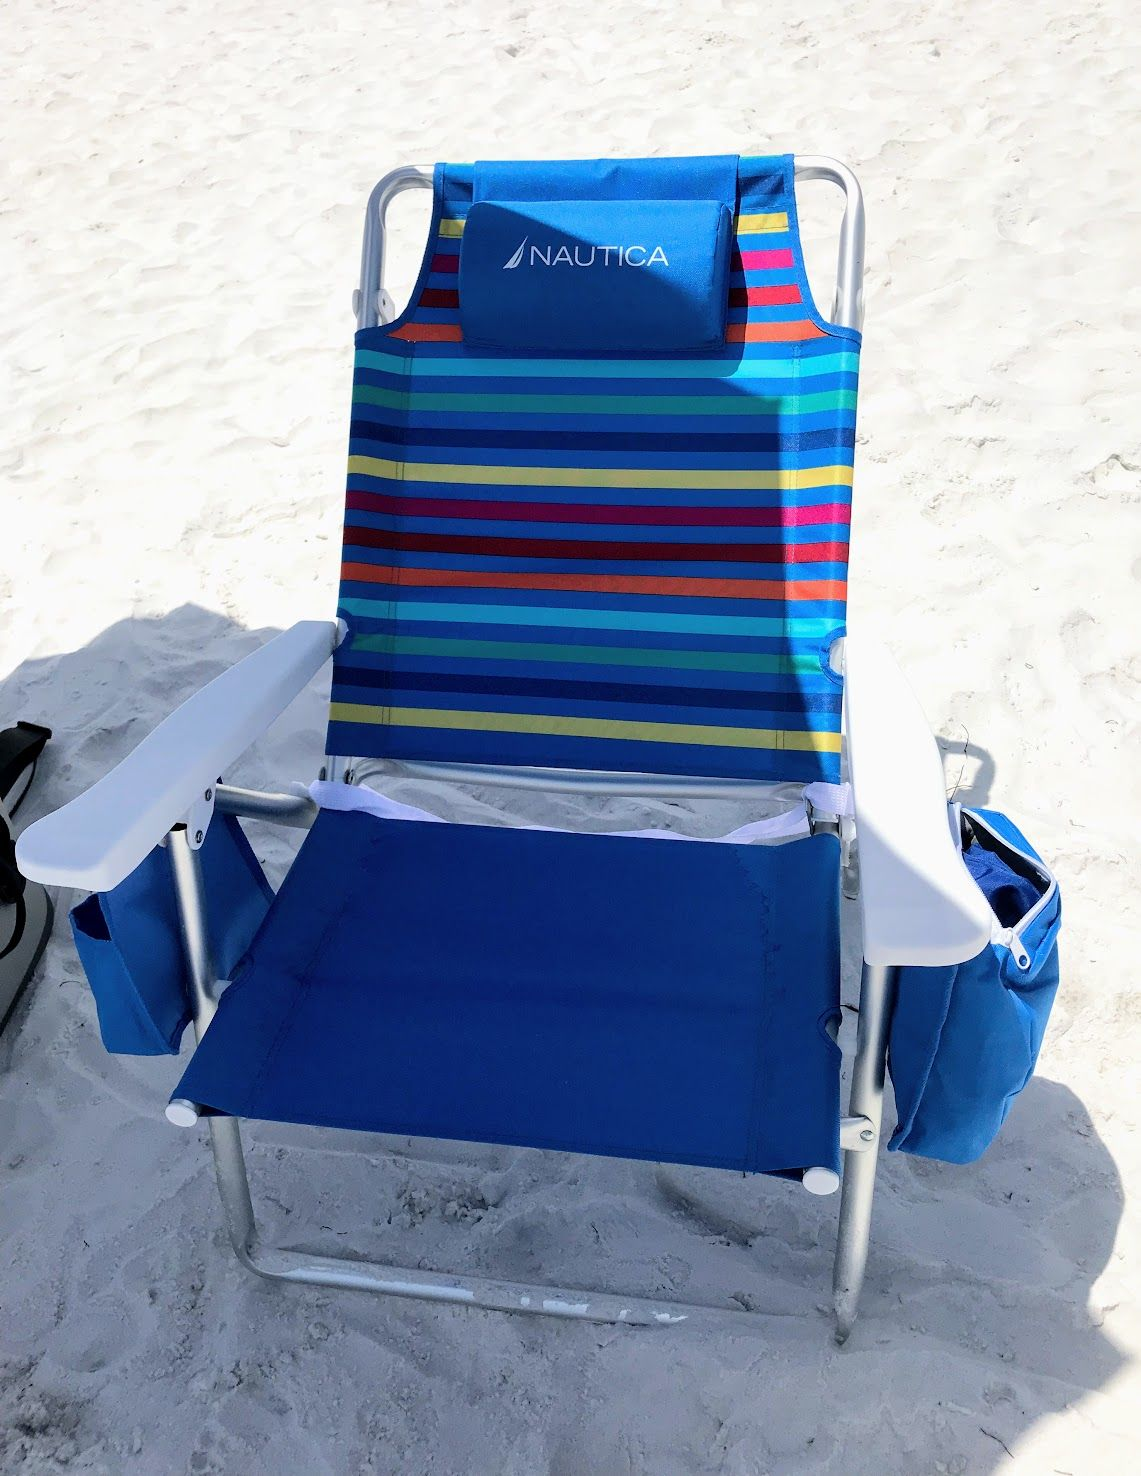 Folding Beach Chair with a Cooler Bag, Backpack Straps